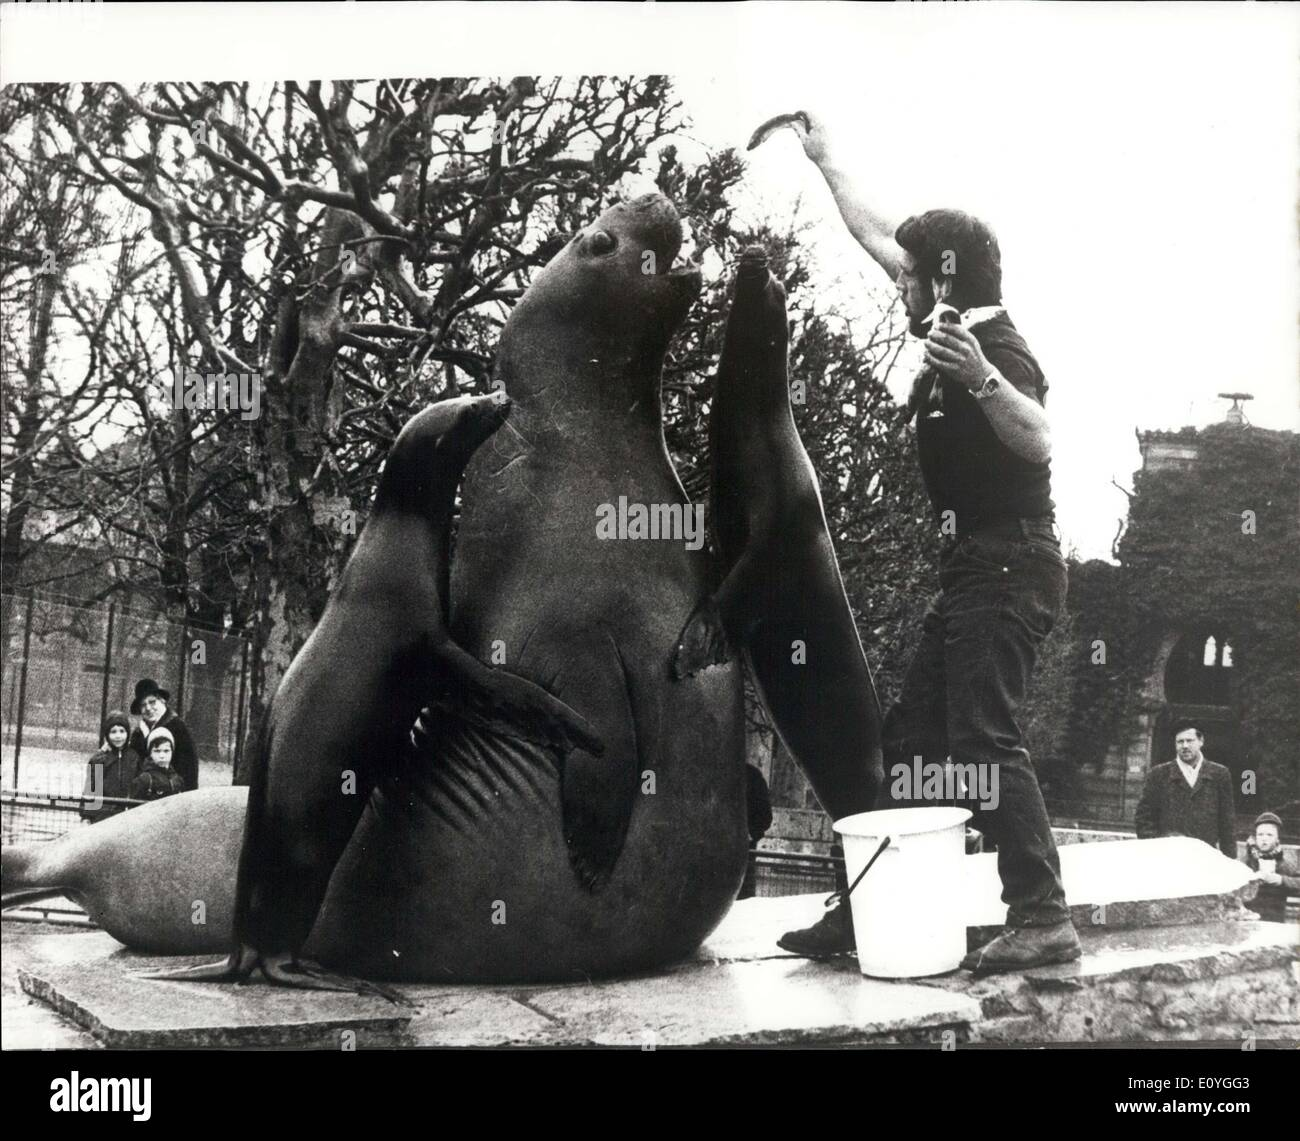 Apr. 13, 1970 - Feeding time tableau: Samy, the sea elephant and two sealions make this statue like tableau, during feeding time at the Stuttgart Zoo ''Wilhelma' - Stock Image